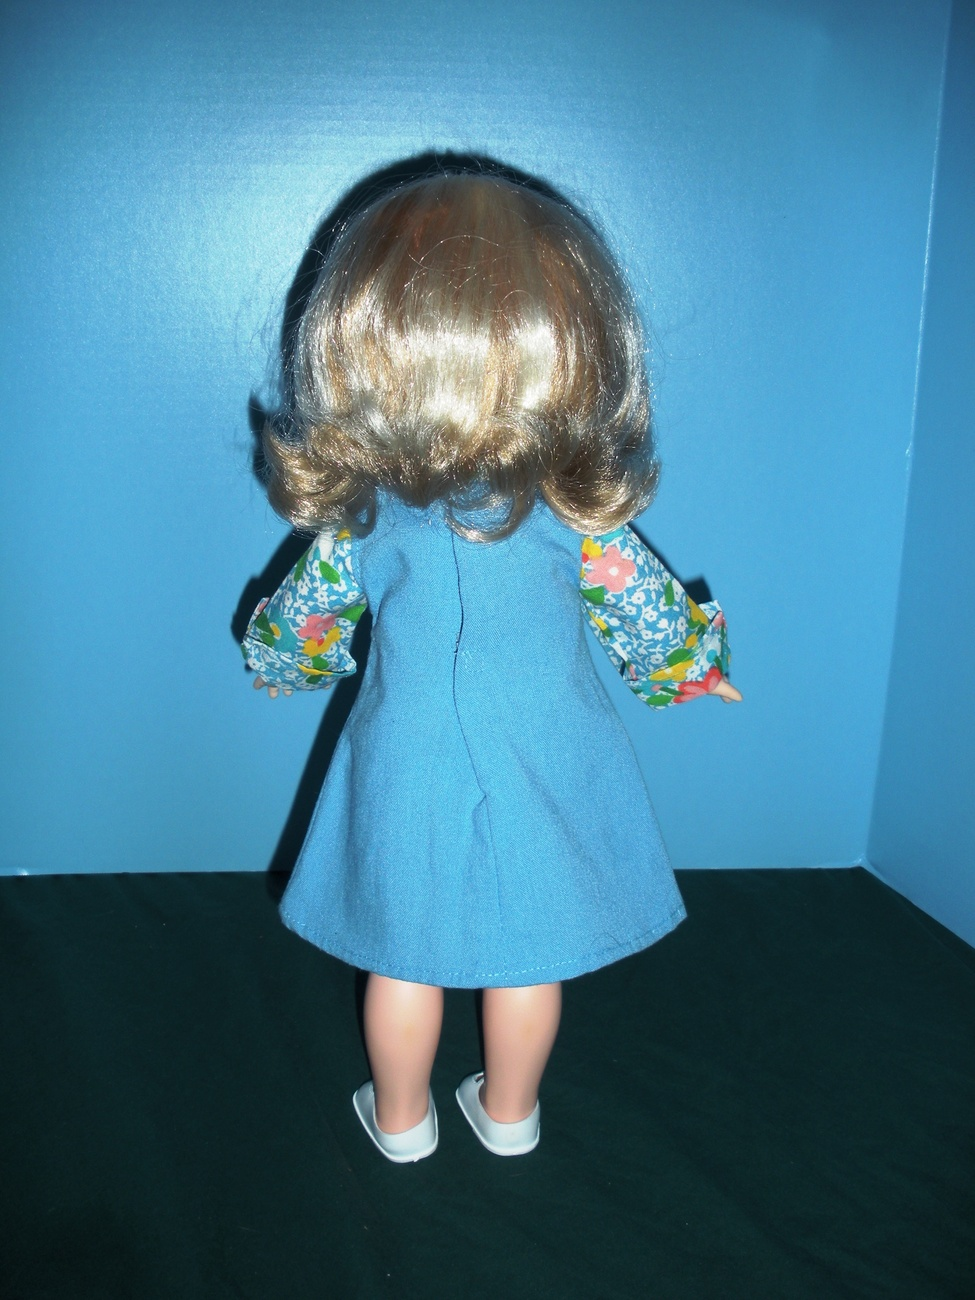 Vtg. Fisher Price My Friend #223 Jumper and Blouse Outfit COMP/NR MINT + SHOES